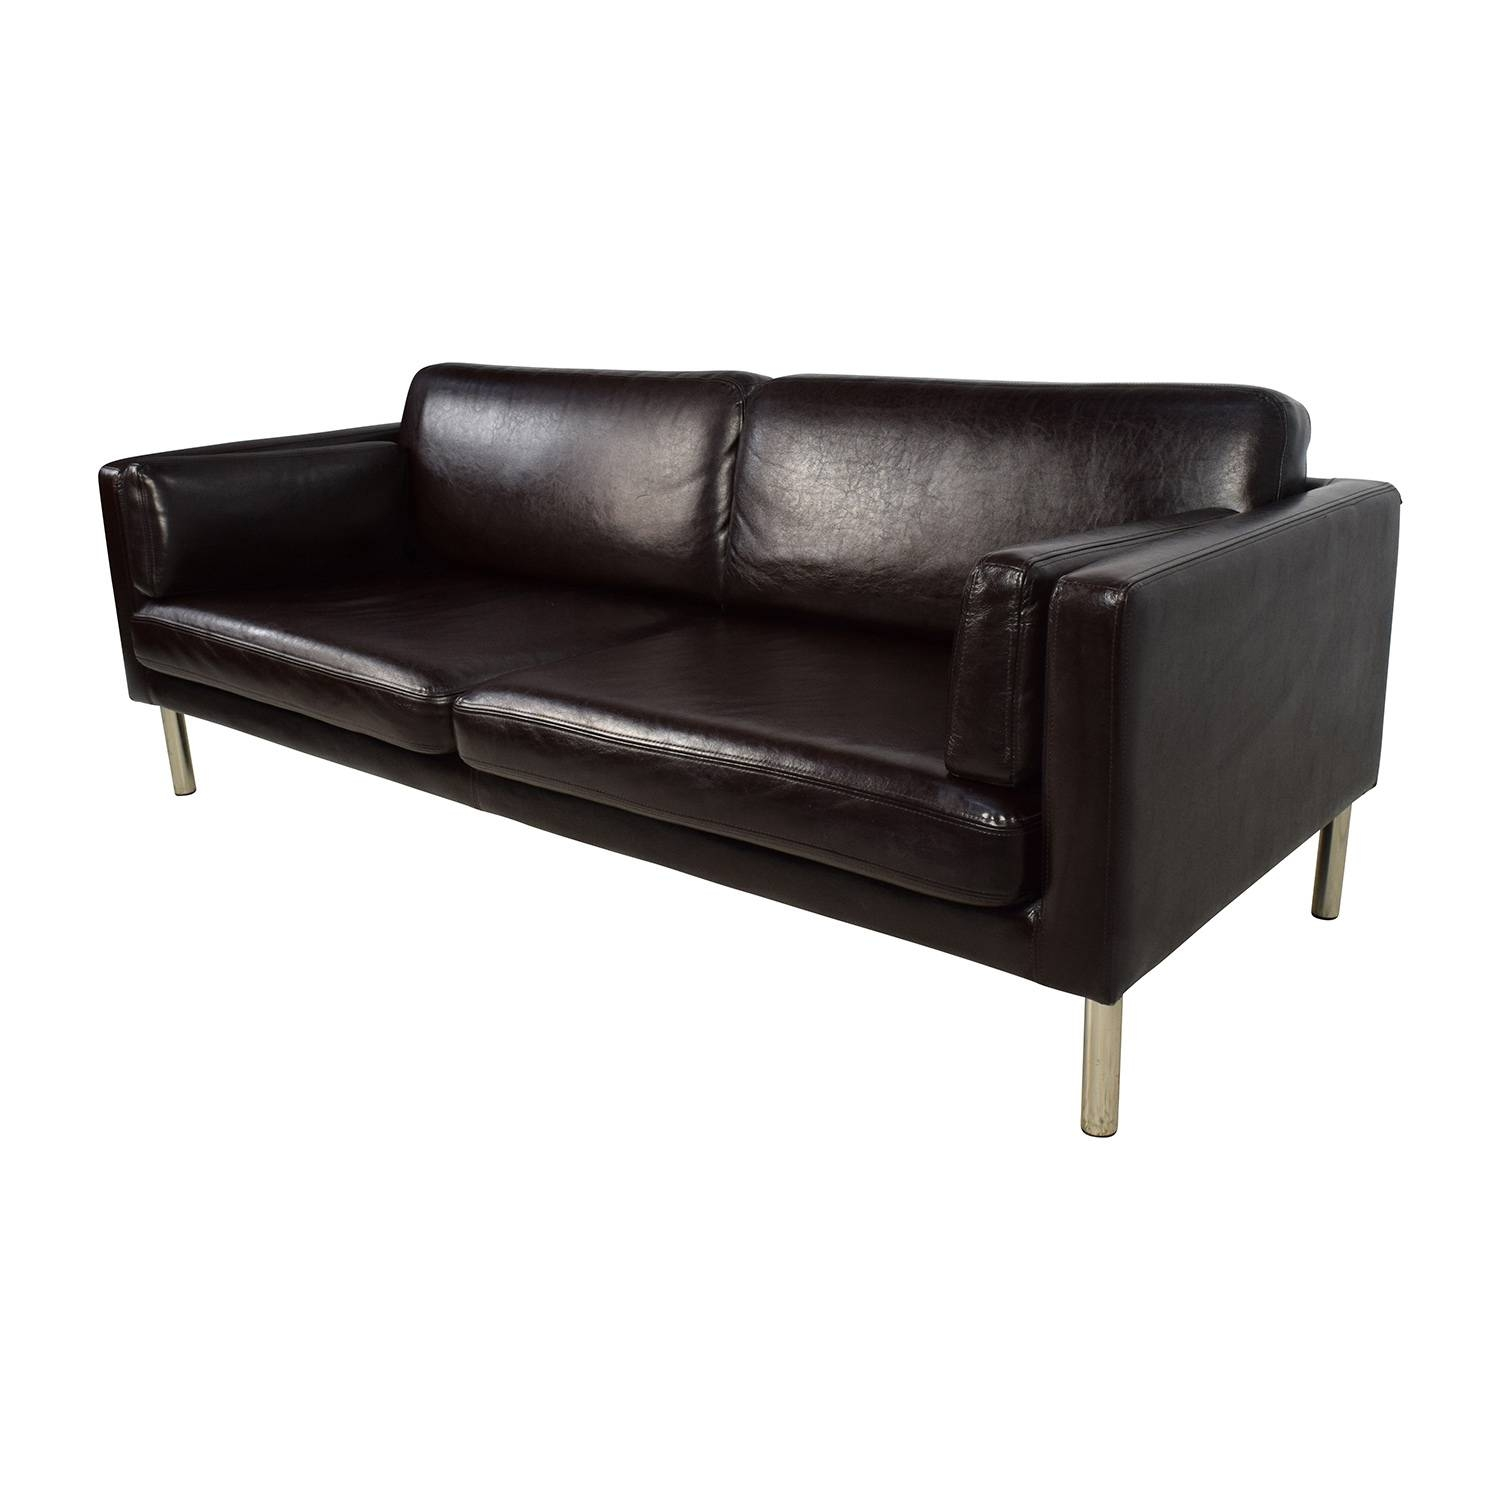 76% Off   Brown Leather Sofa With Chrome Legs / Sofas Intended For Sofas With Chrome Legs (Photo 8 of 15)